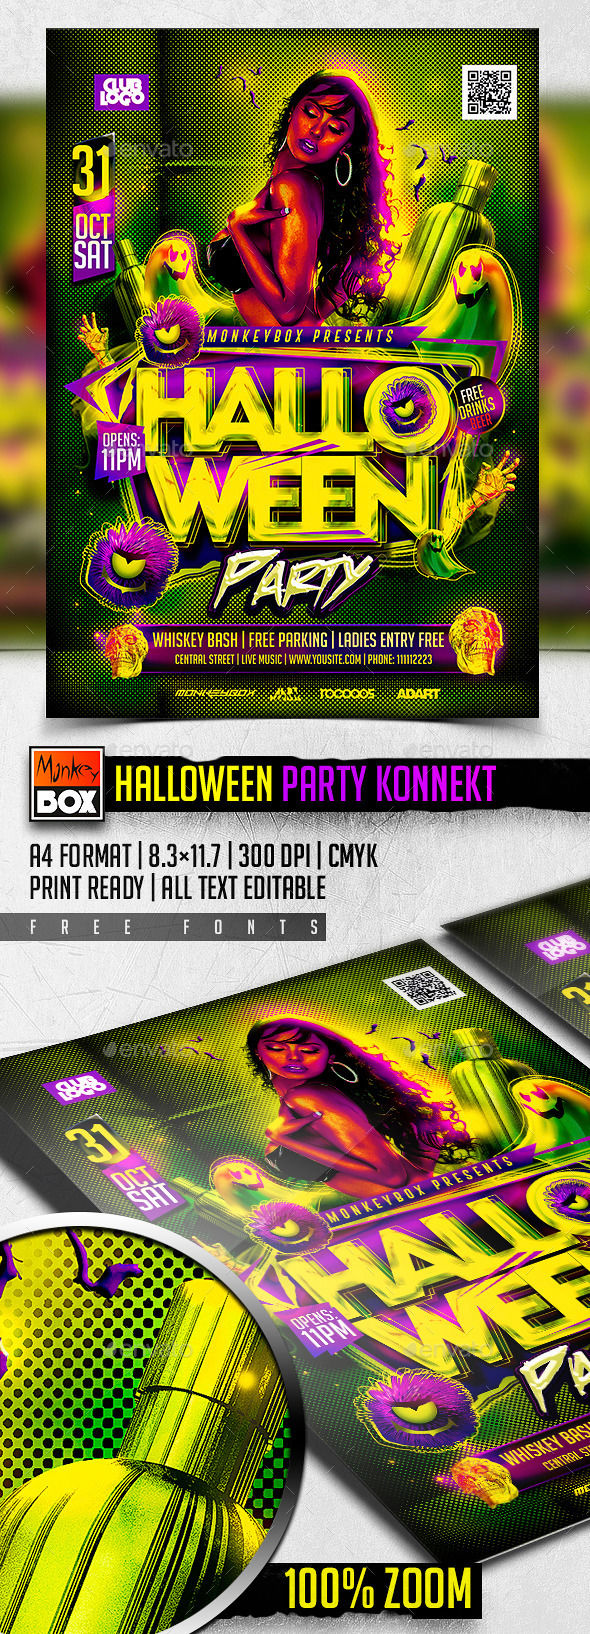 Halloween Party Konnekt by MonkeyBOX (Halloween party flyer)